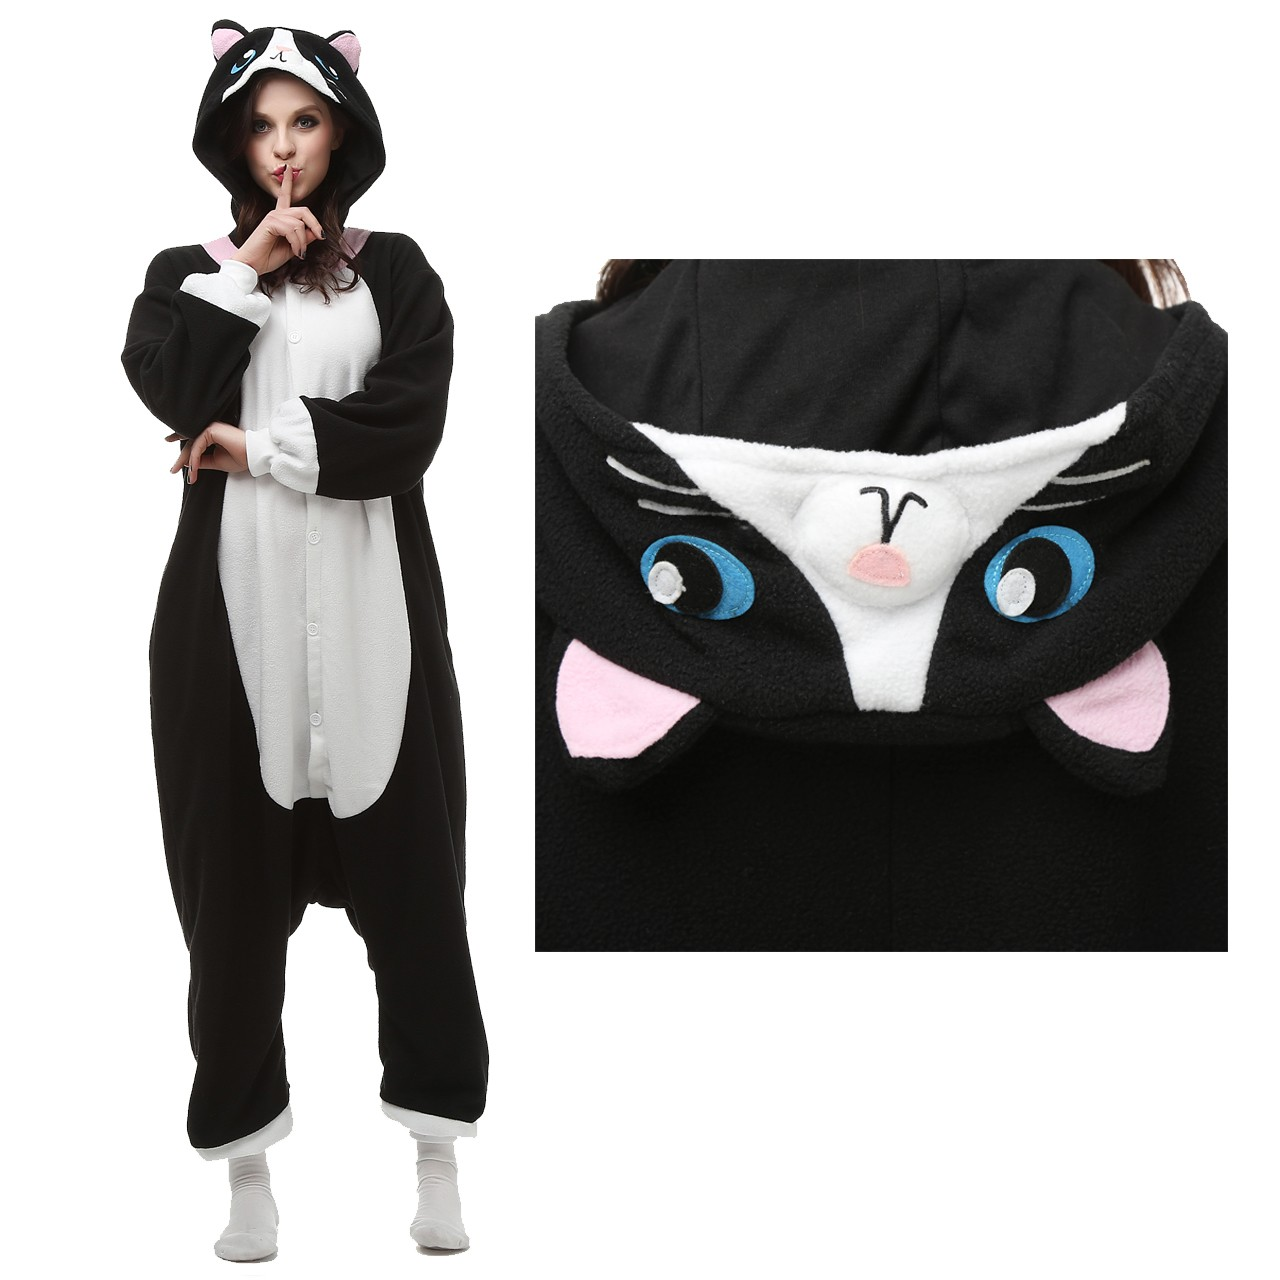 ddbf0e0c6675 Black Cat Onesie